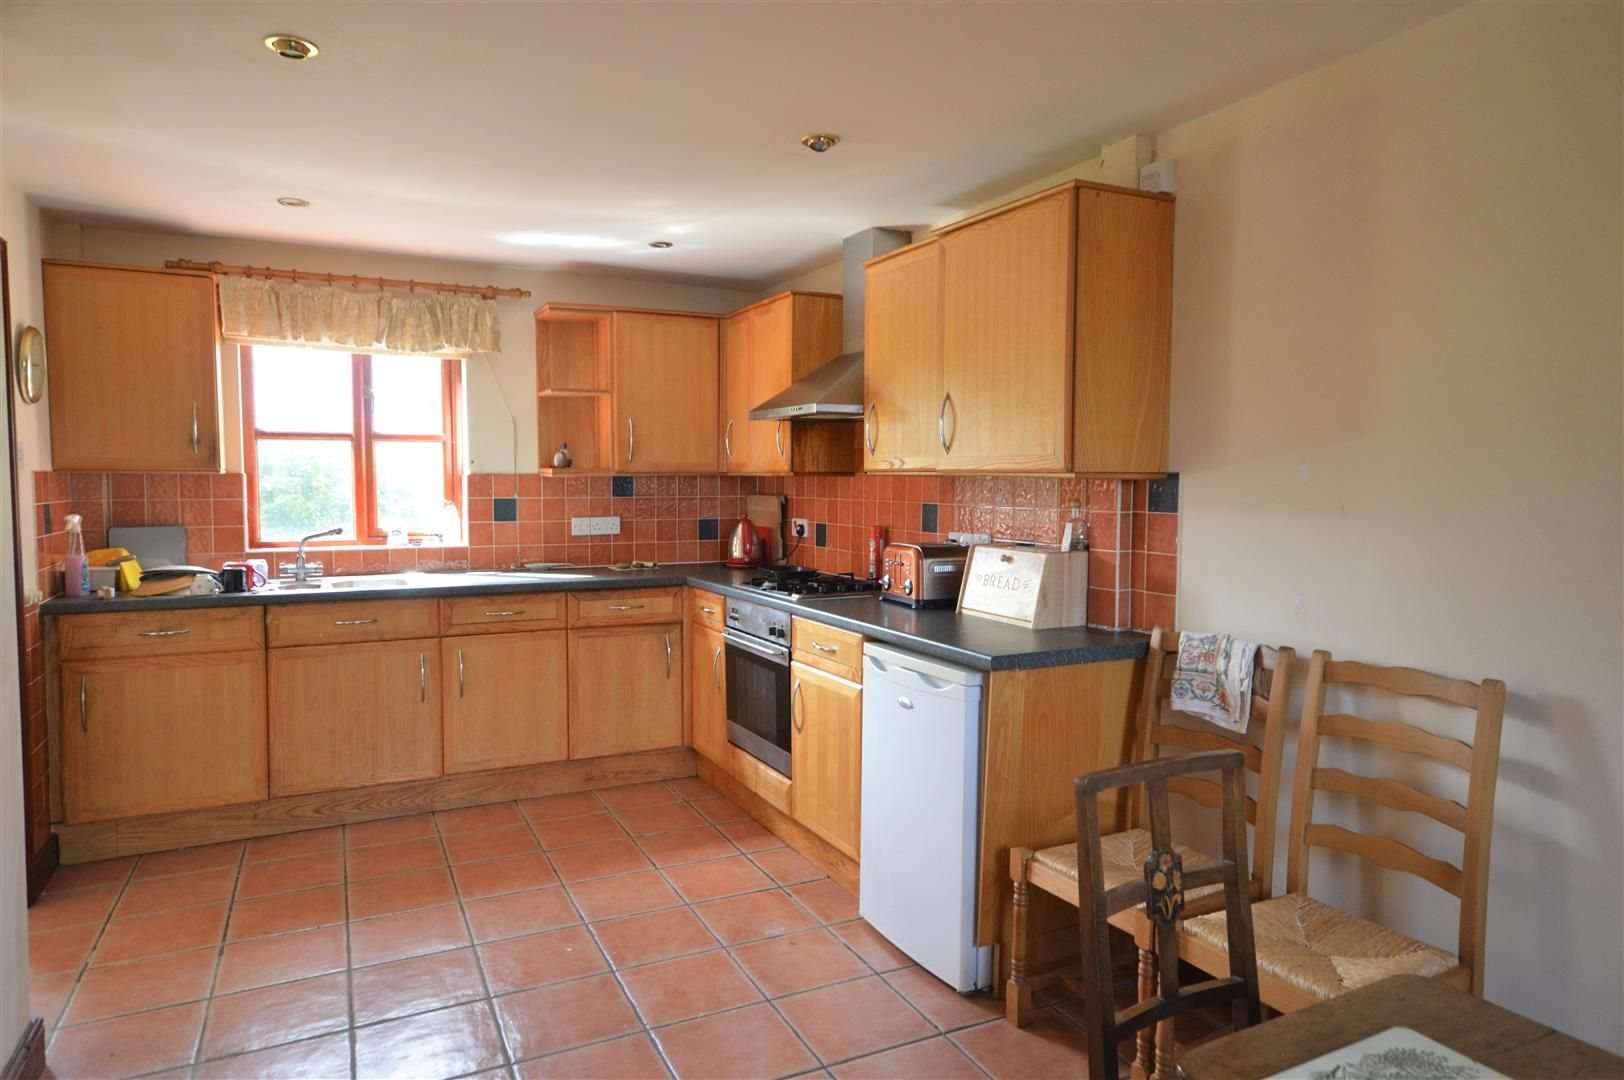 4 bed detached for sale in Bodenham 3